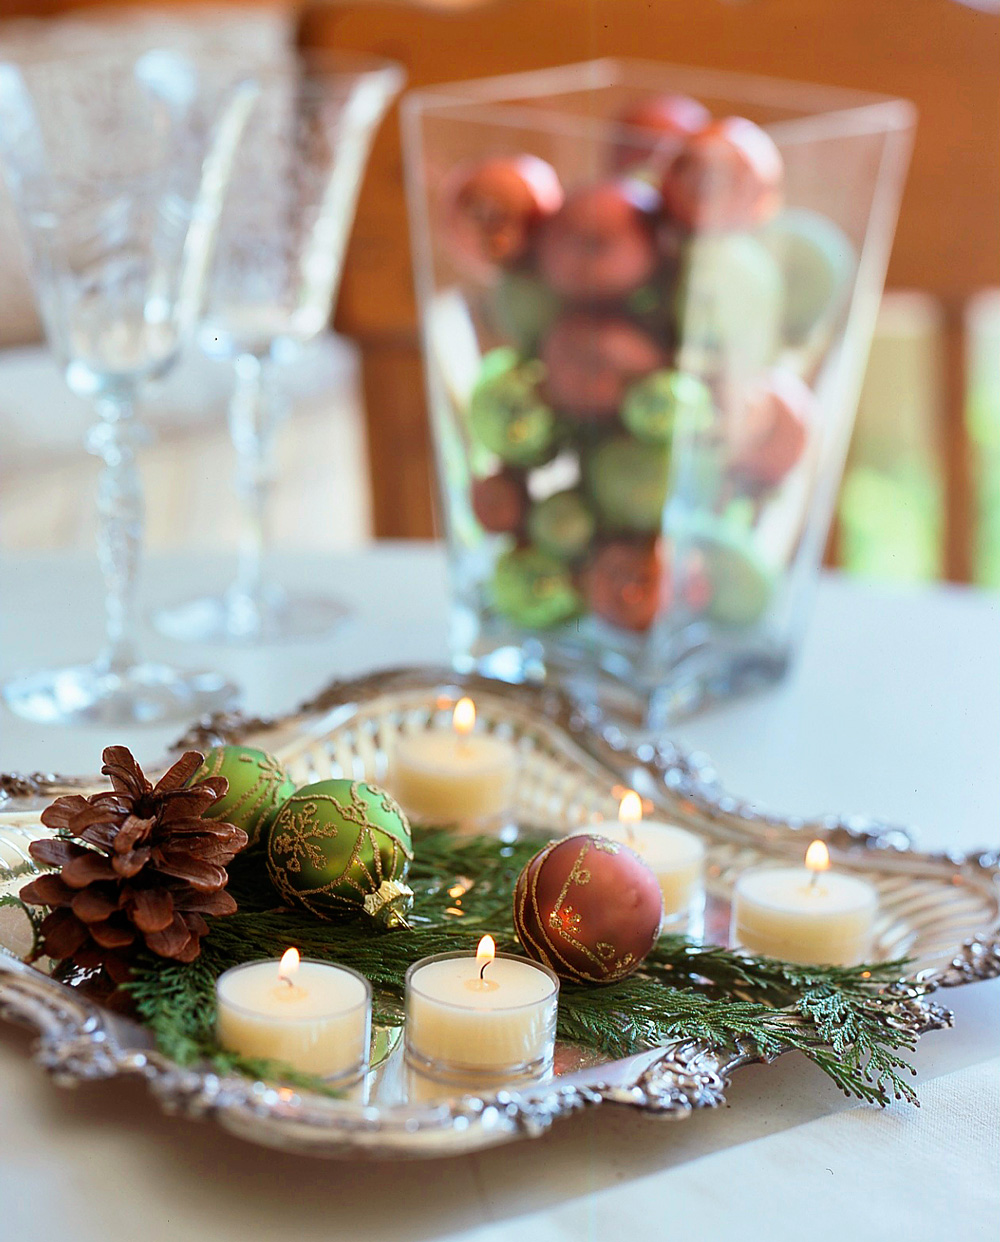 Christmas centerpiece ideas: ornaments on a tray